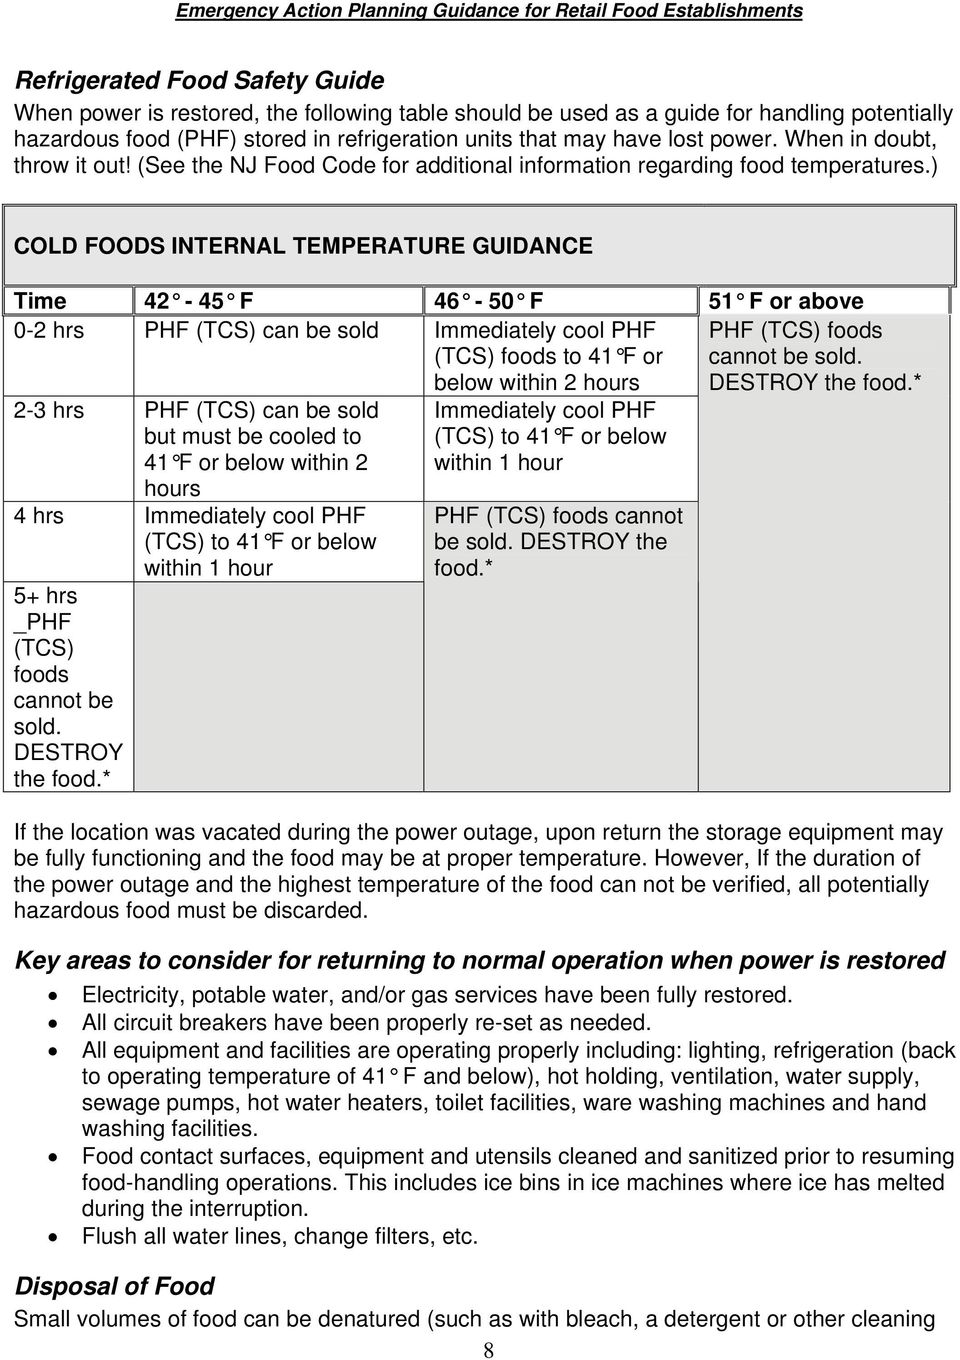 ) COLD FOODS INTERNAL TEMPERATURE GUIDANCE Time 42-45 F 46-50 F 51 F or above 0-2 hrs PHF (TCS) can be sold Immediately cool PHF (TCS) foods to 41 F or below within 2 hours 2-3 hrs PHF (TCS) can be